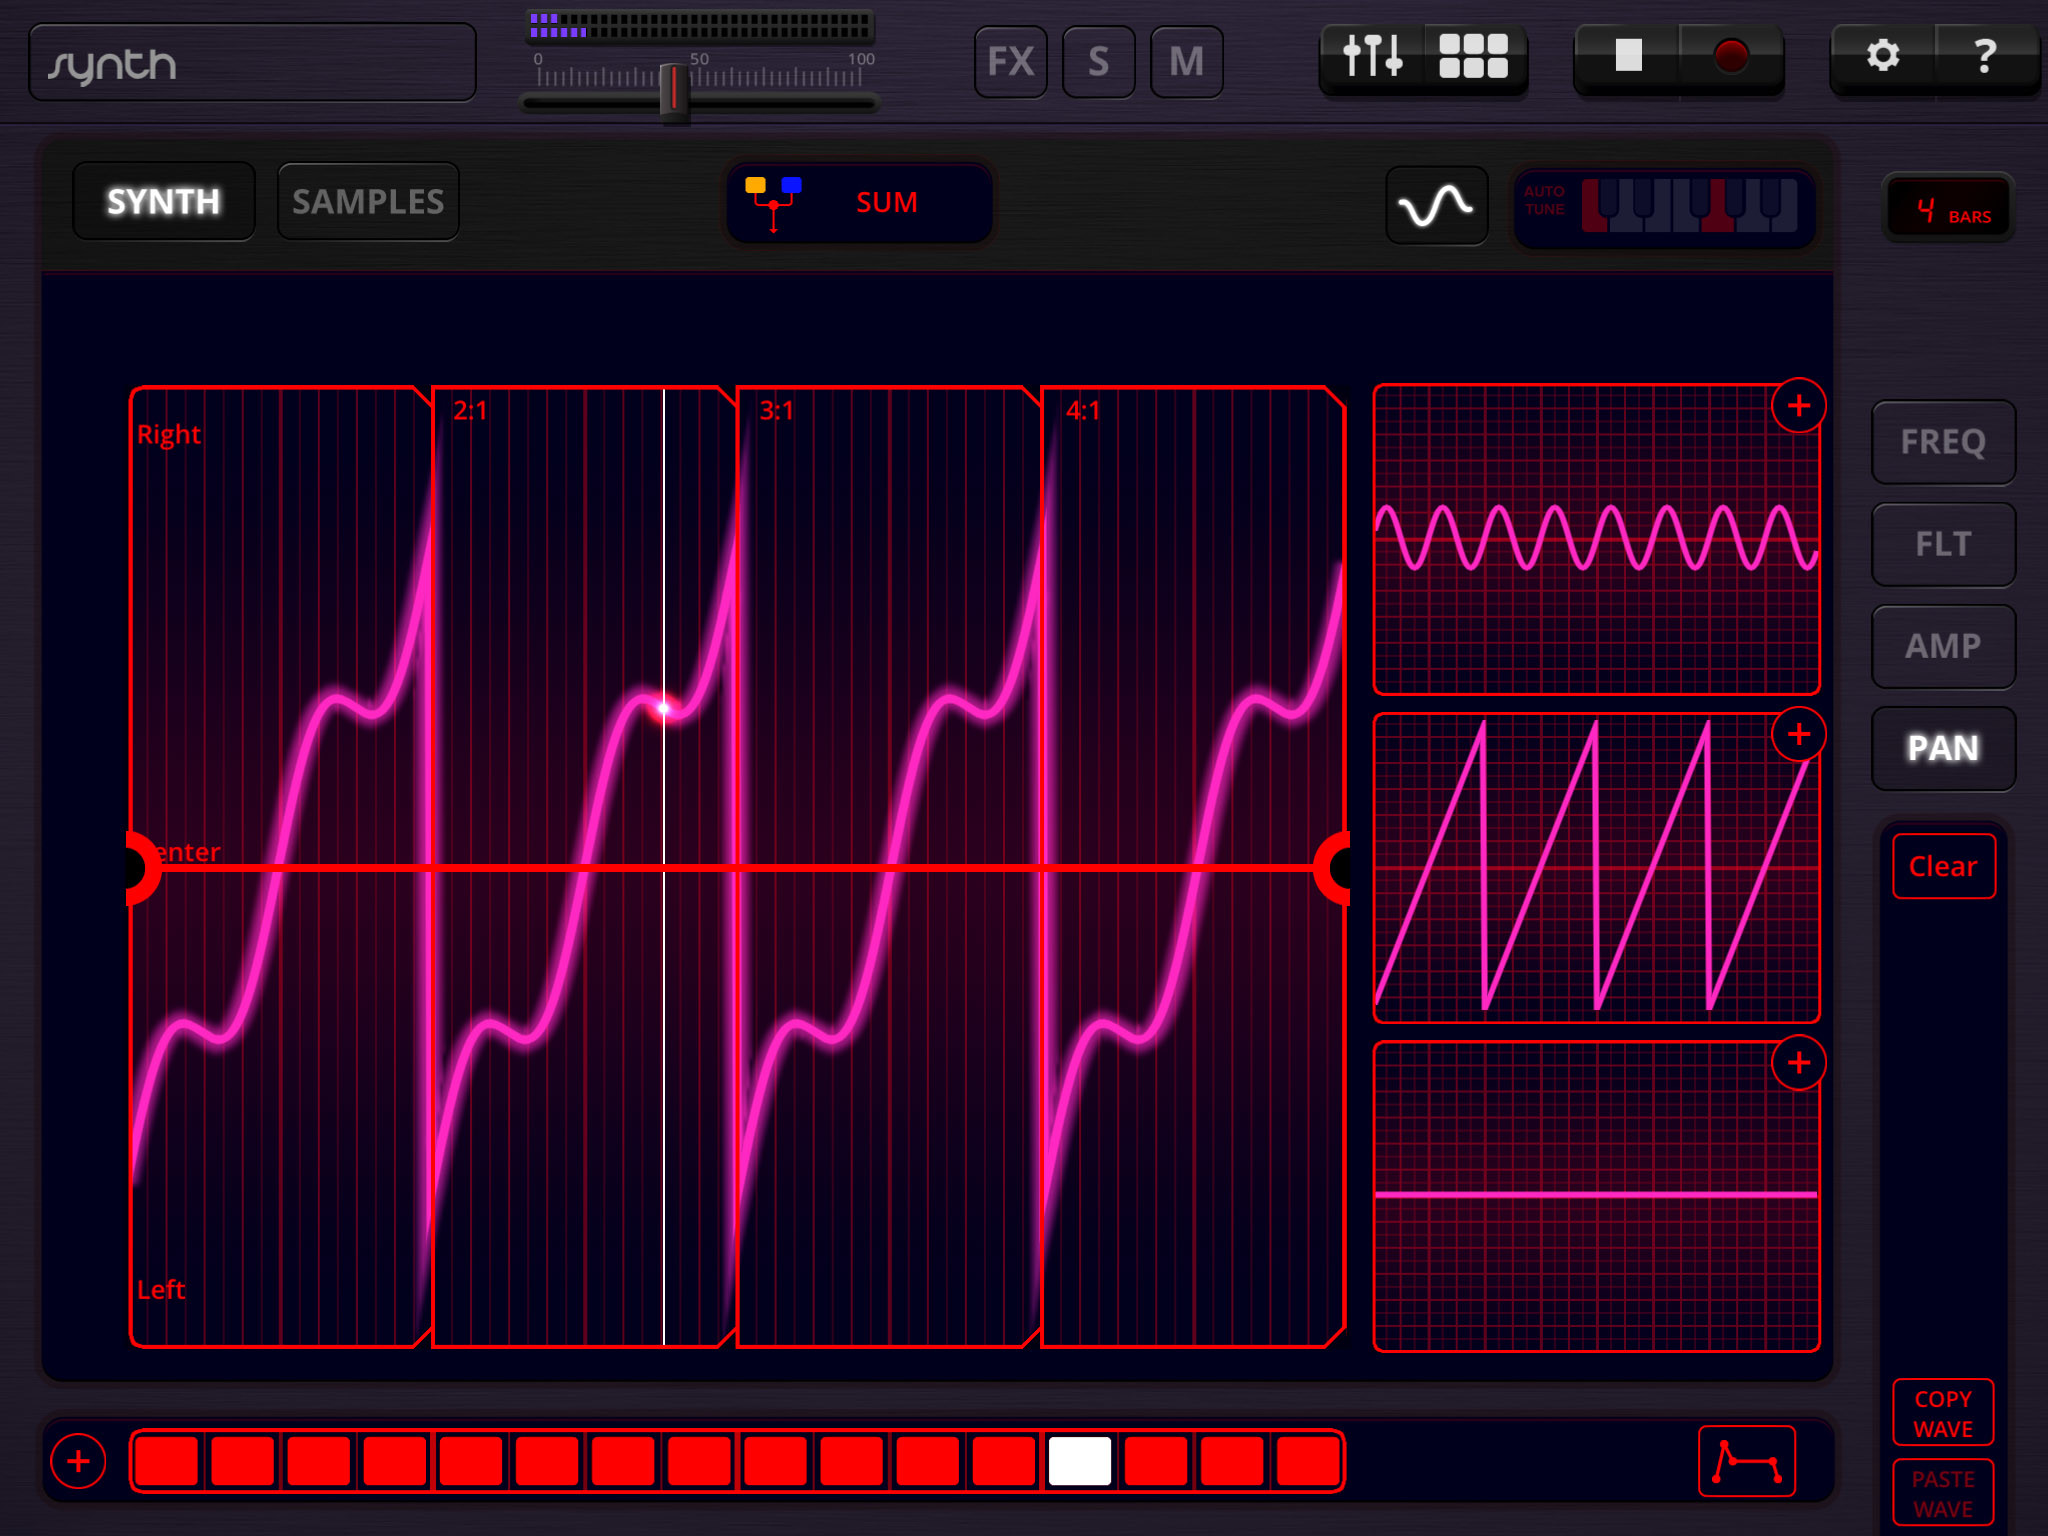 Many of the sound and pitch sequence settings in Oscilab can be adjusted by  tweaking the